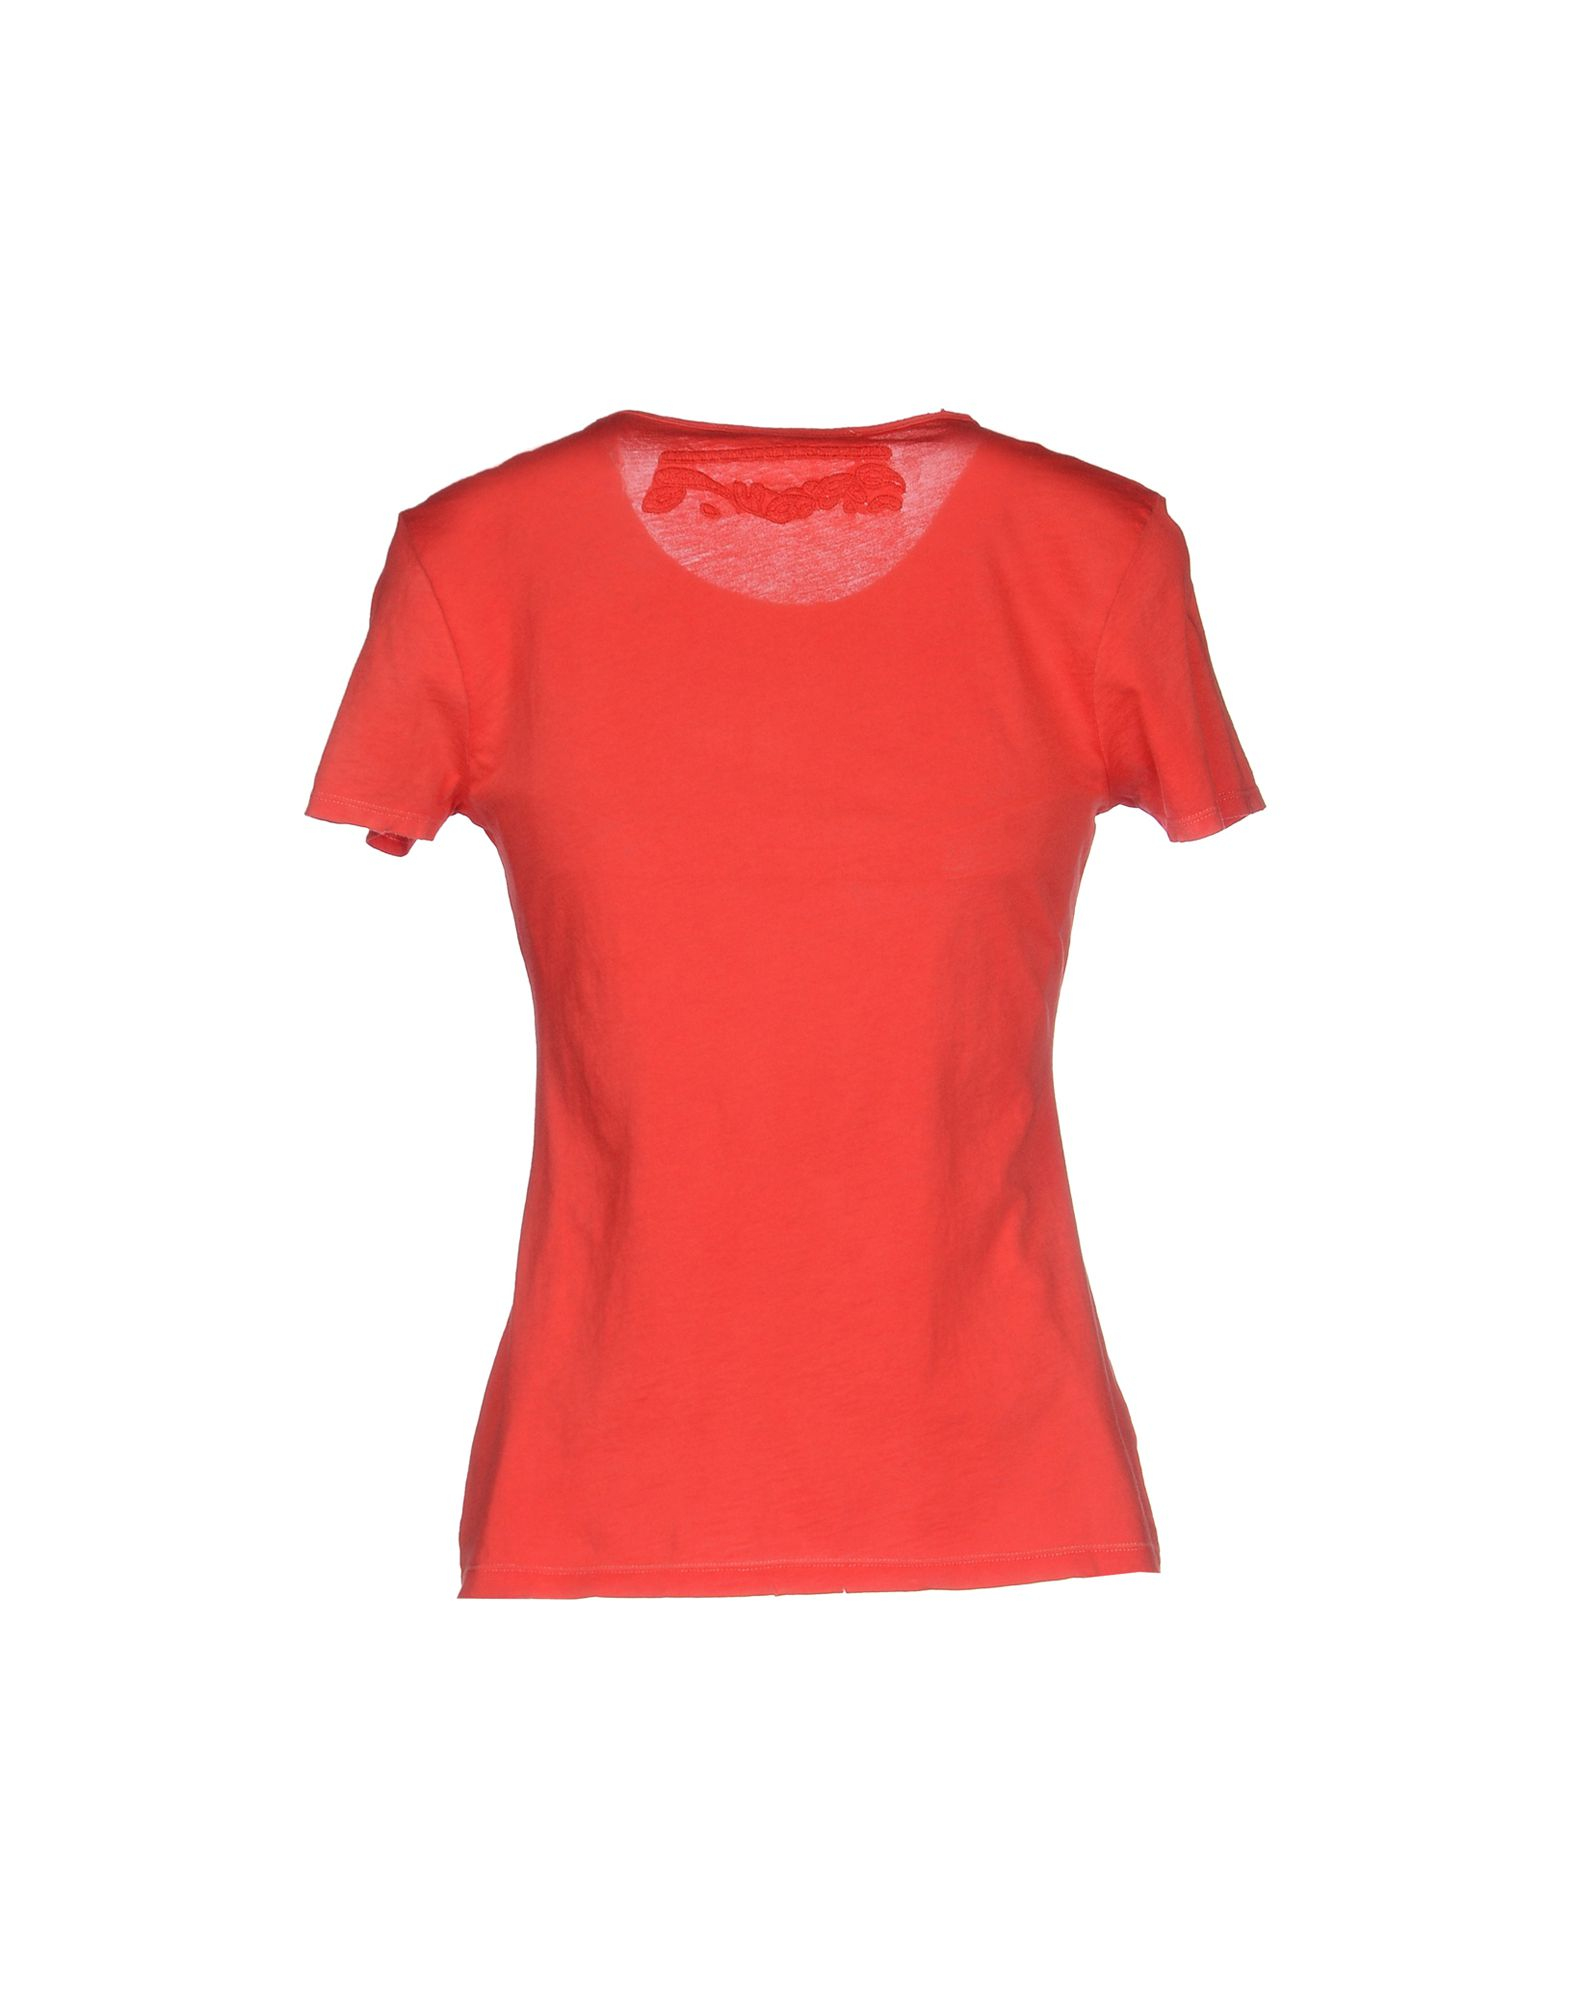 Mason 39 S T Shirt In Red